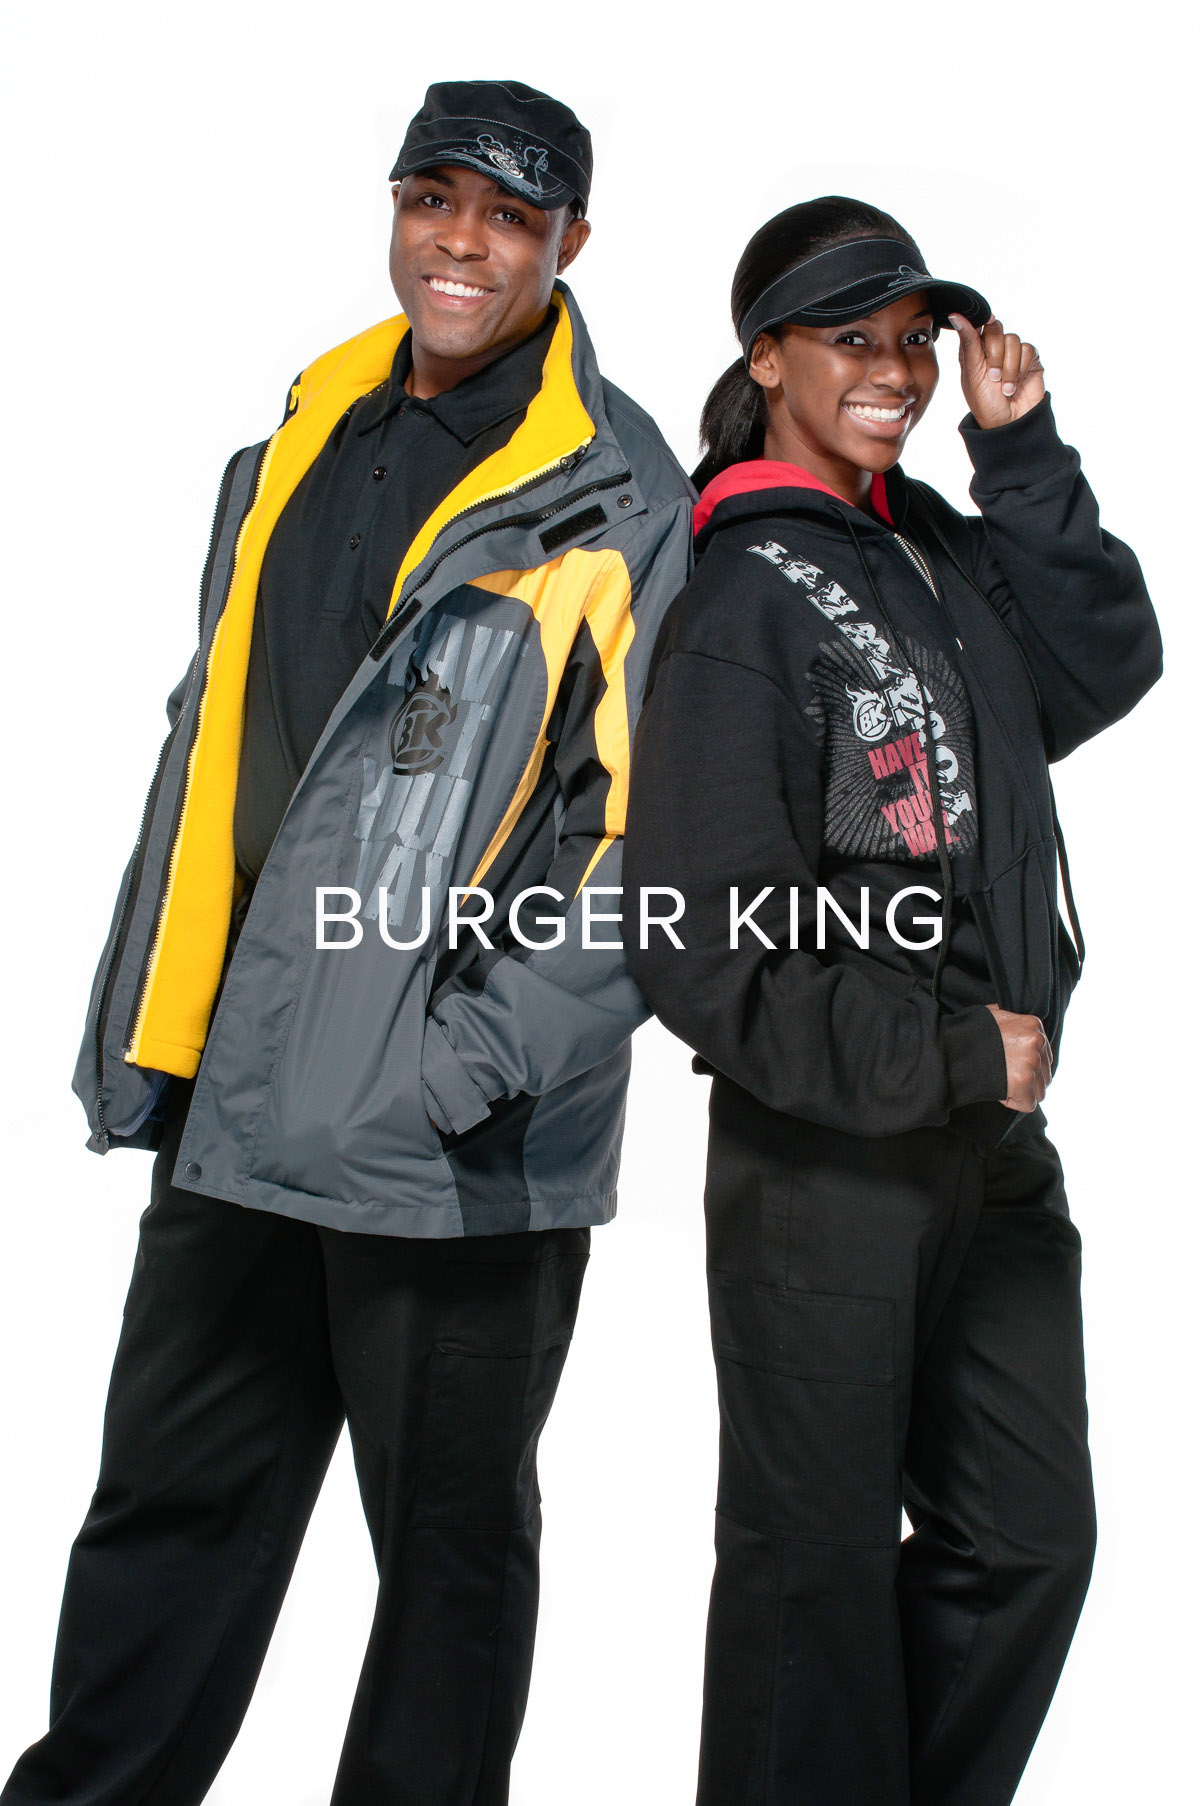 Burger-king-uniform-catalog-103.jpg